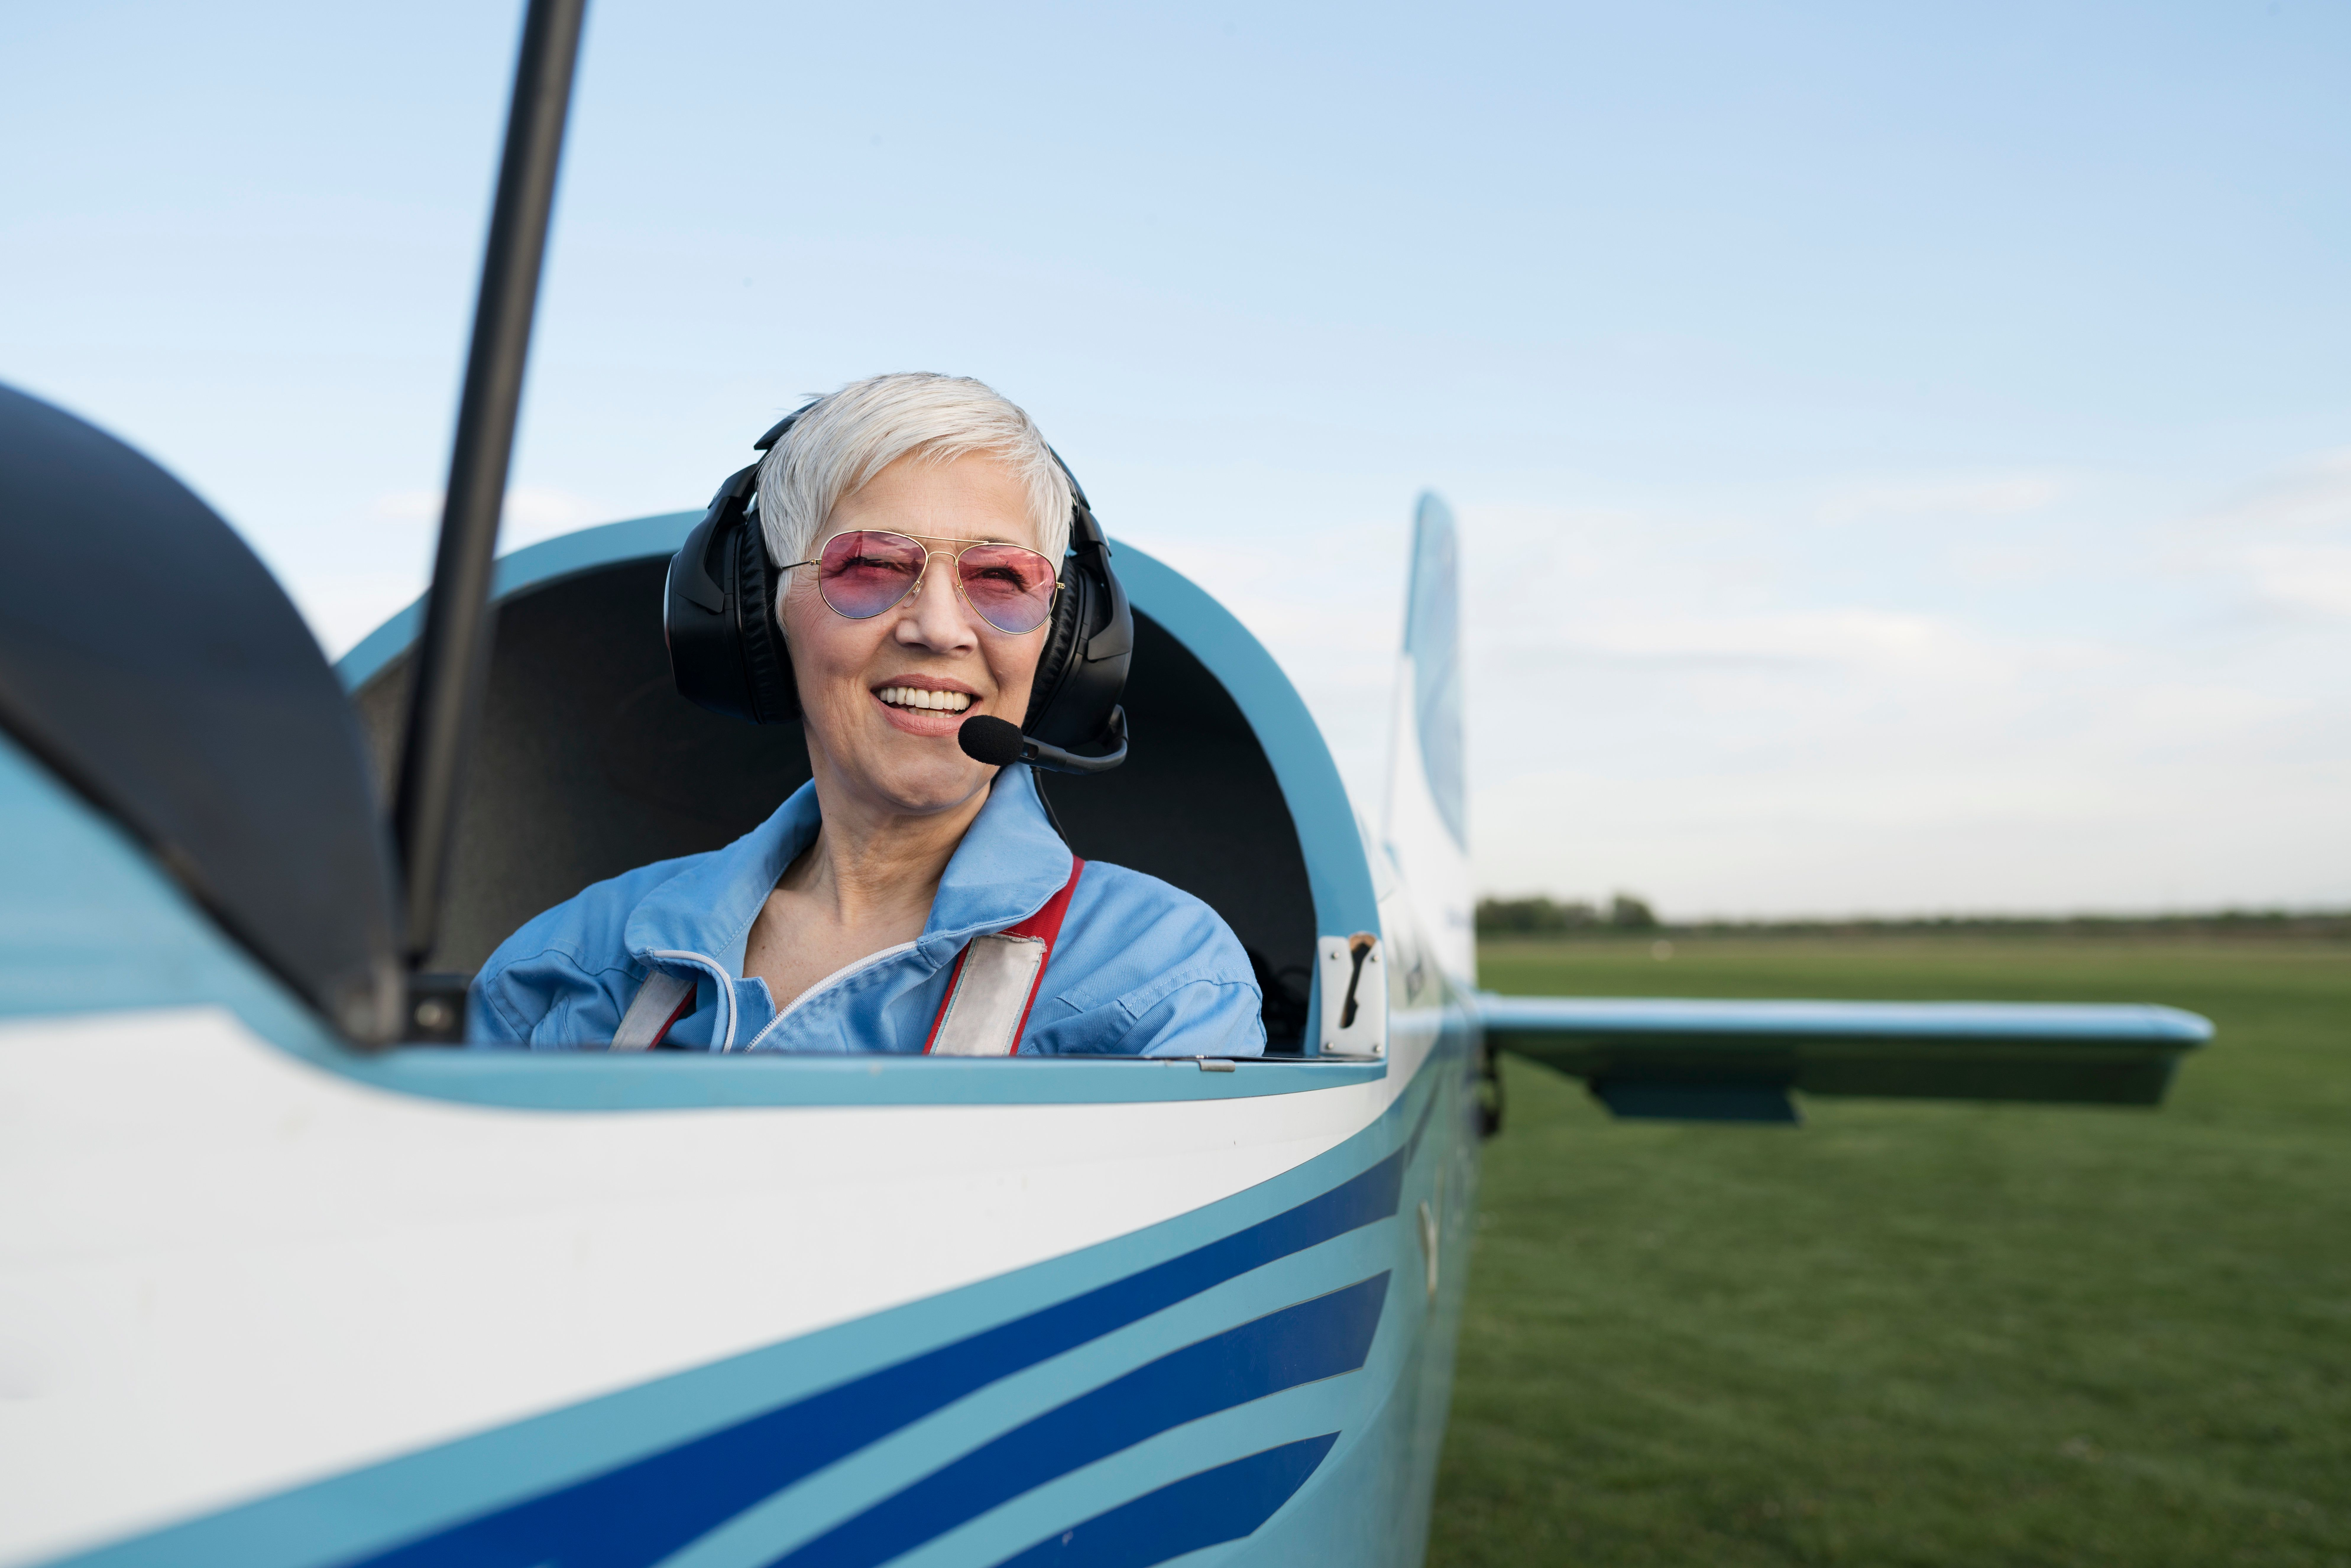 Woman pilot, preparing for flying